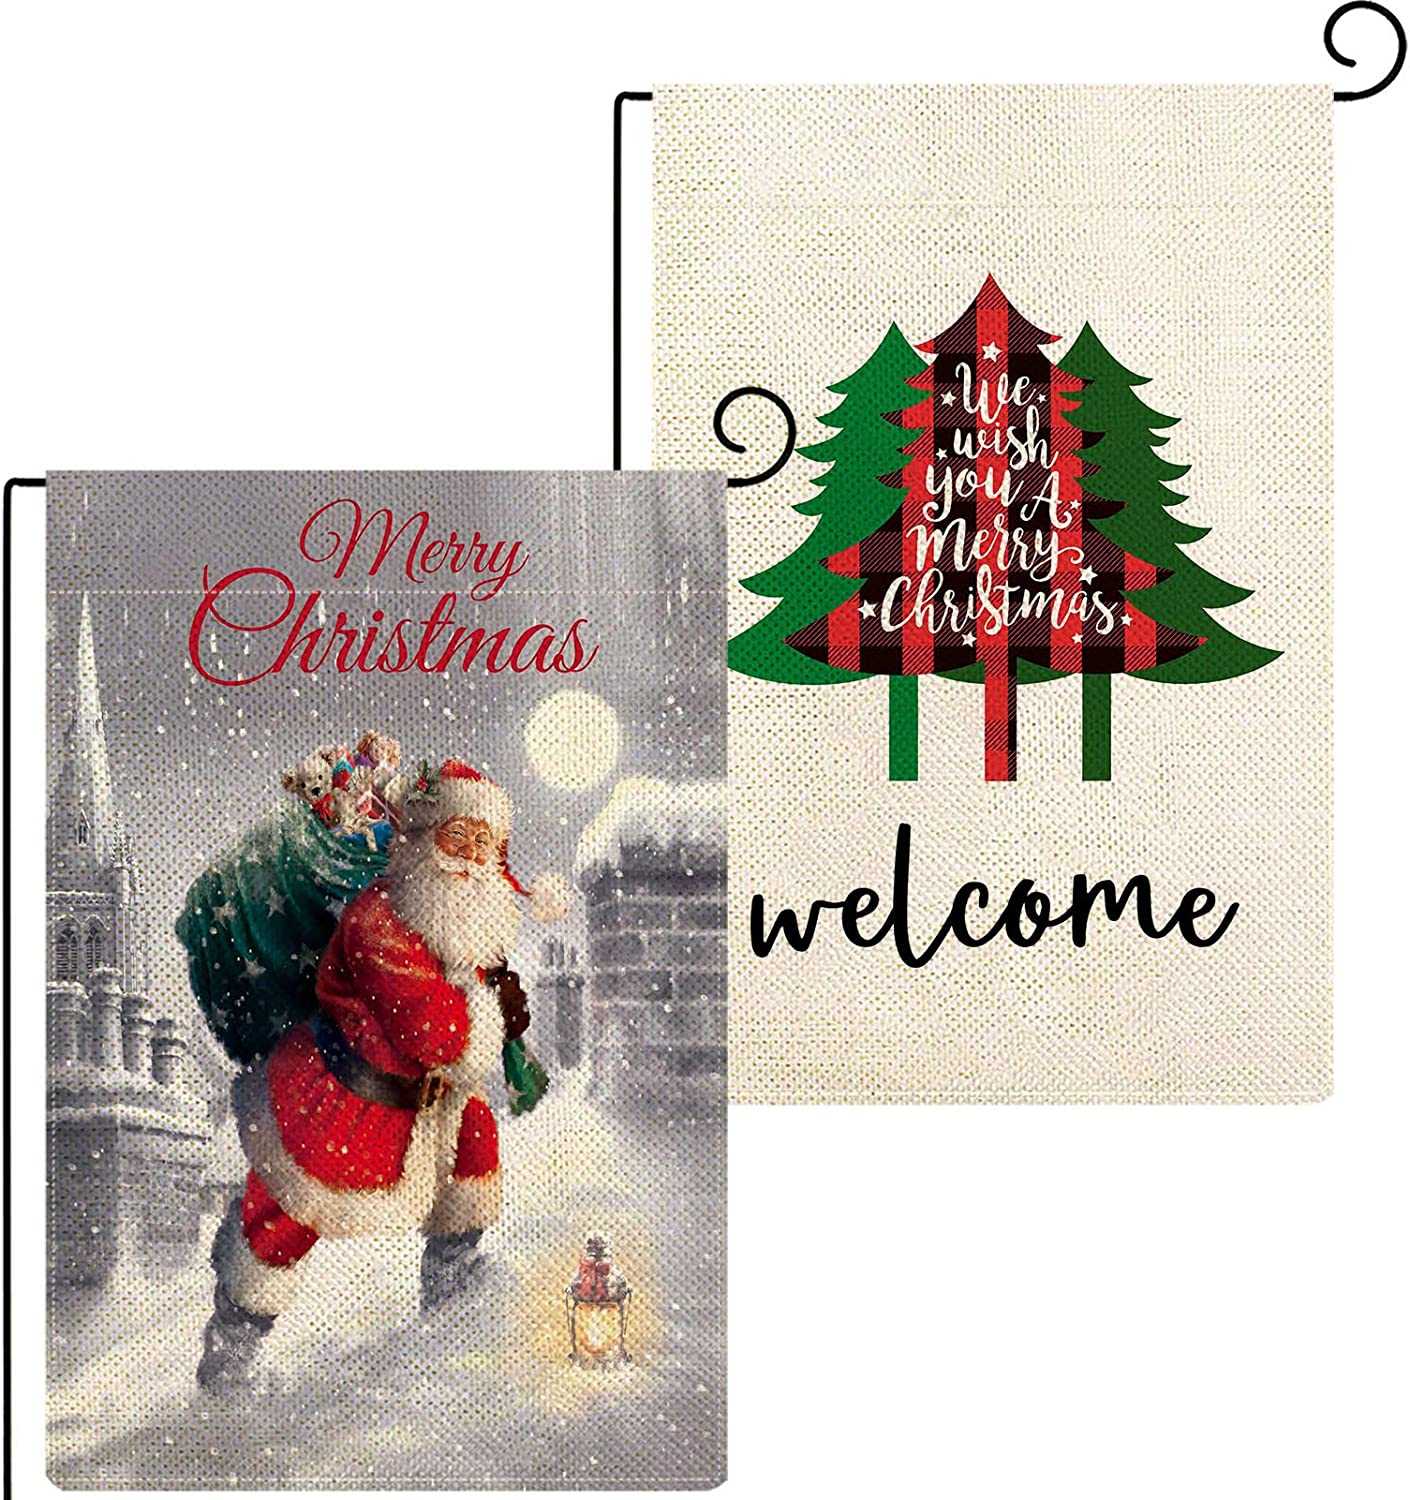 Baccessor Merry Christmas Garden Flag 12.5 x 18 Inch Bundle with Buffalo Plaid Christmas Tree Garden Flag Double Sized Winter Holiday Yard Outdoor Outside Decoration